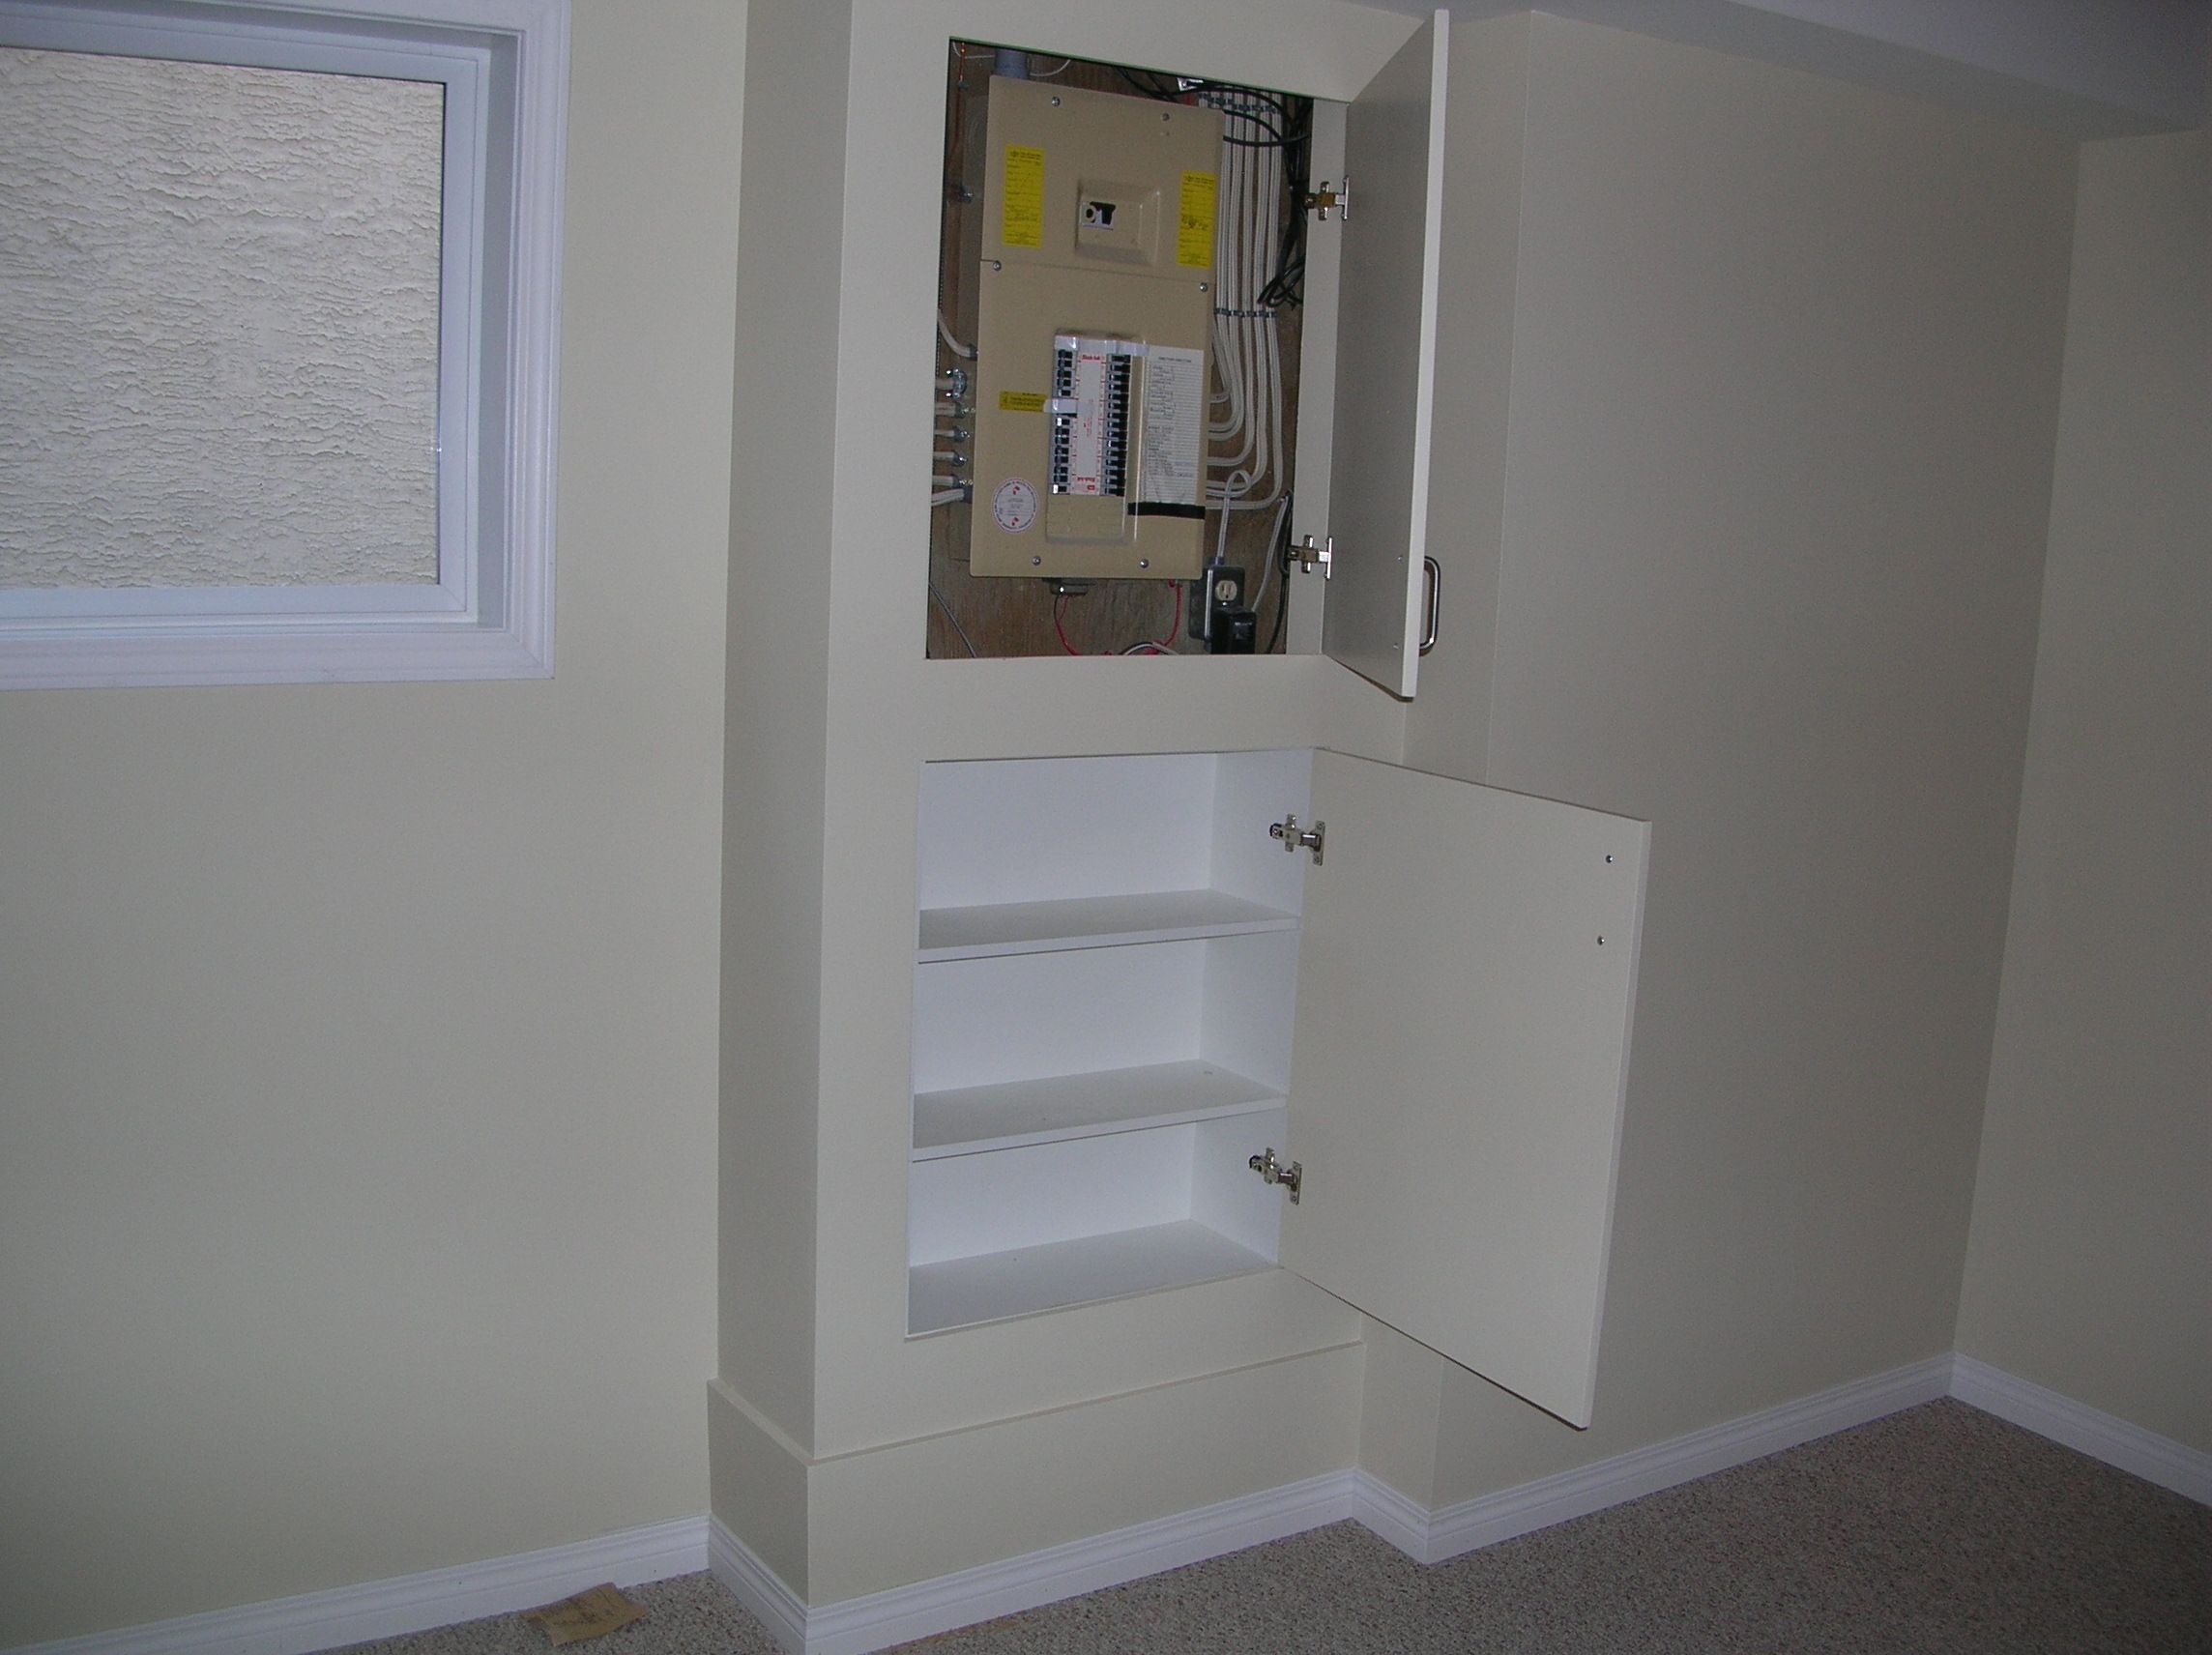 House Fuse Box Cover Ideas : Good idea to hide the electric box basement and laundry